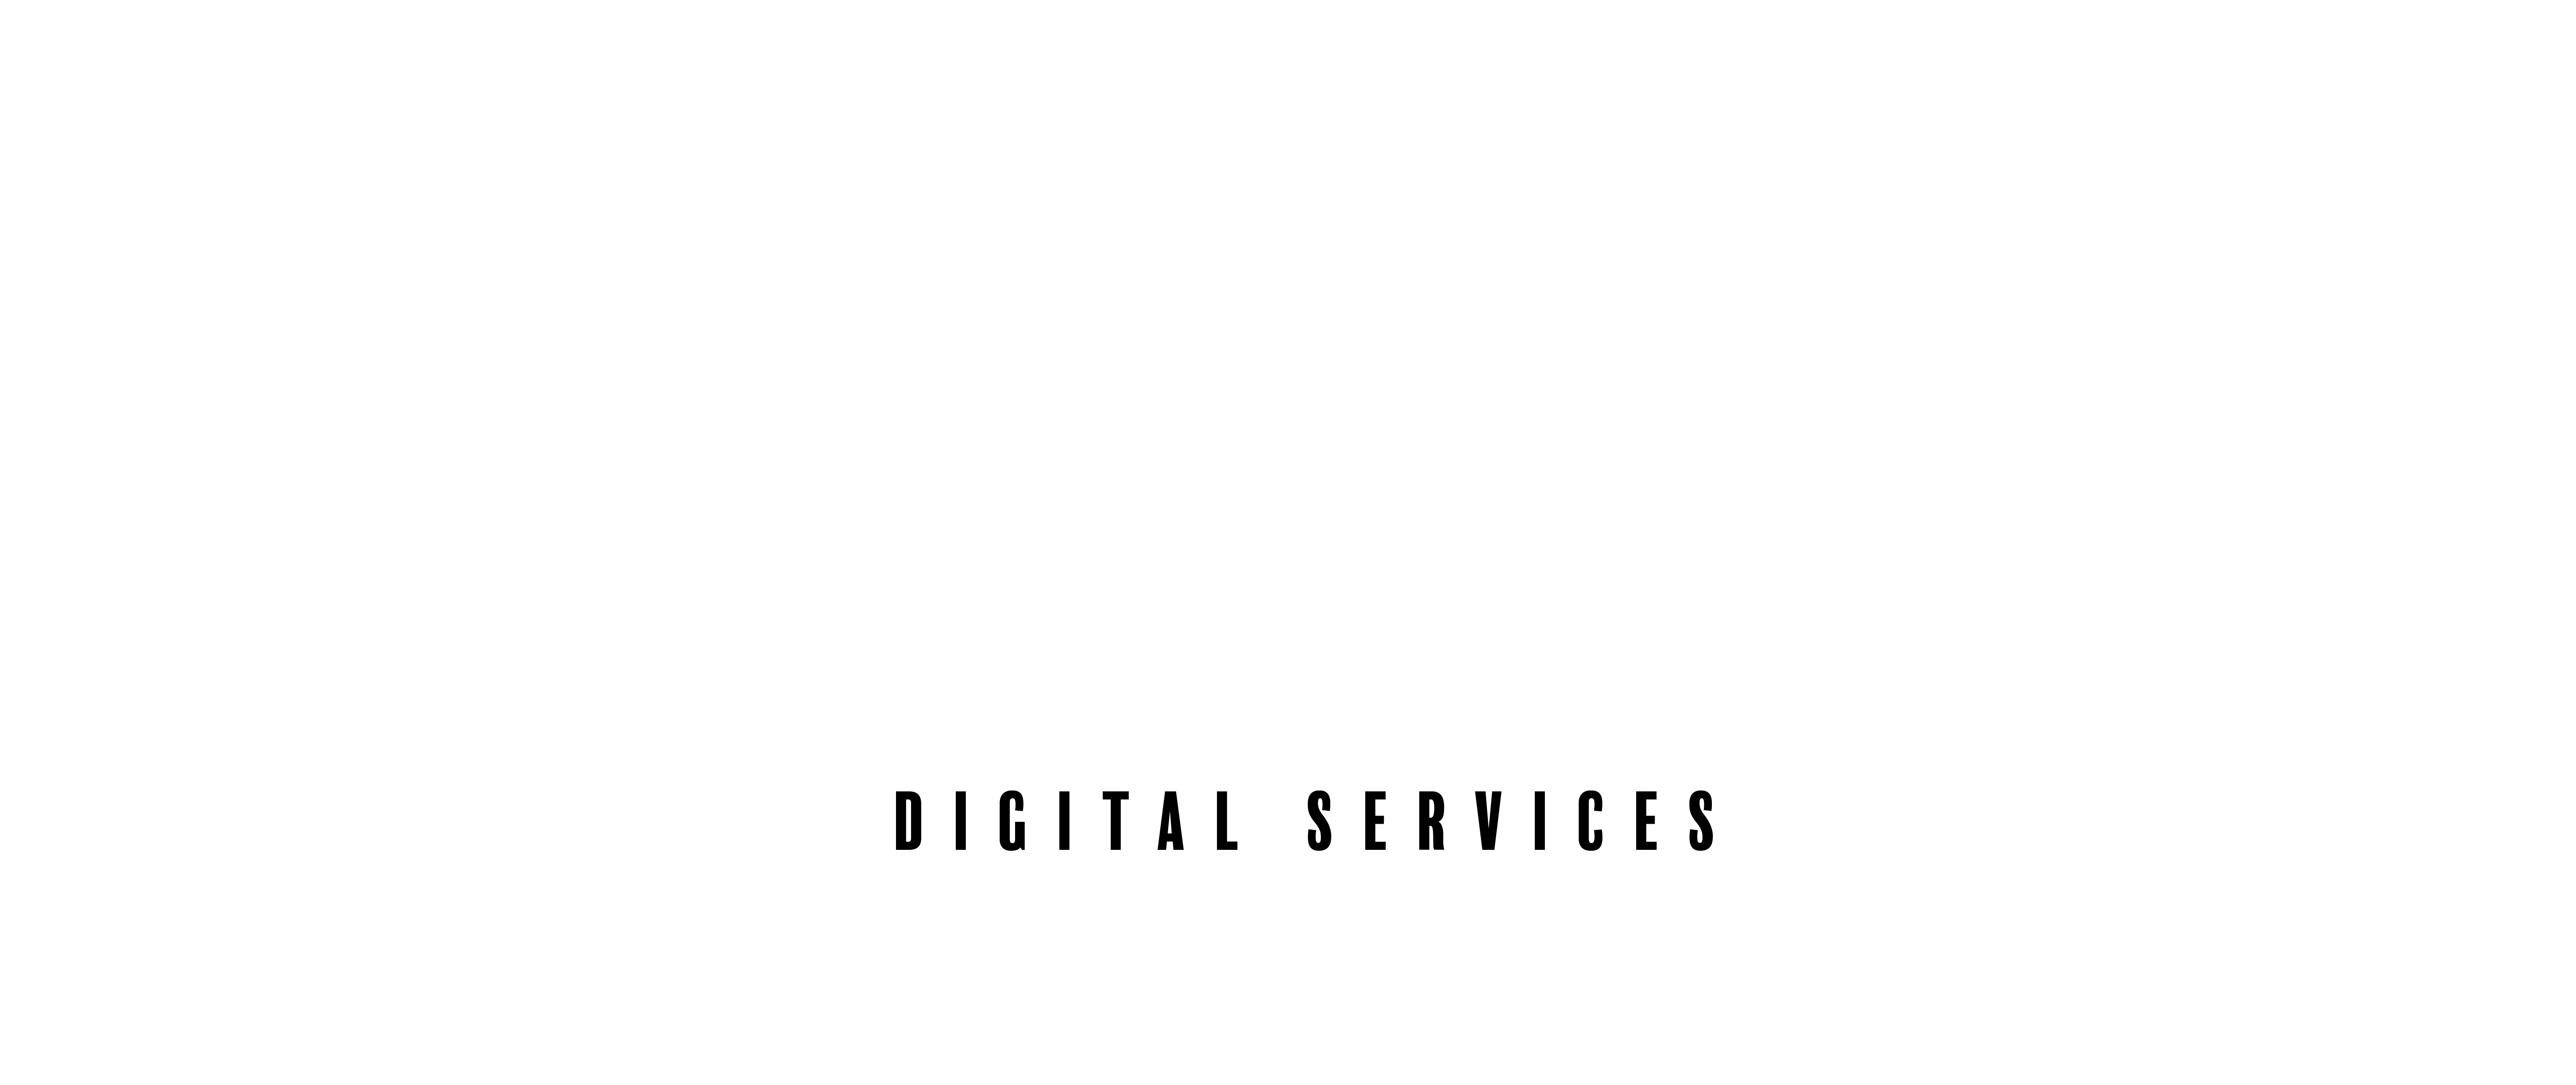 Disruption Banking logo